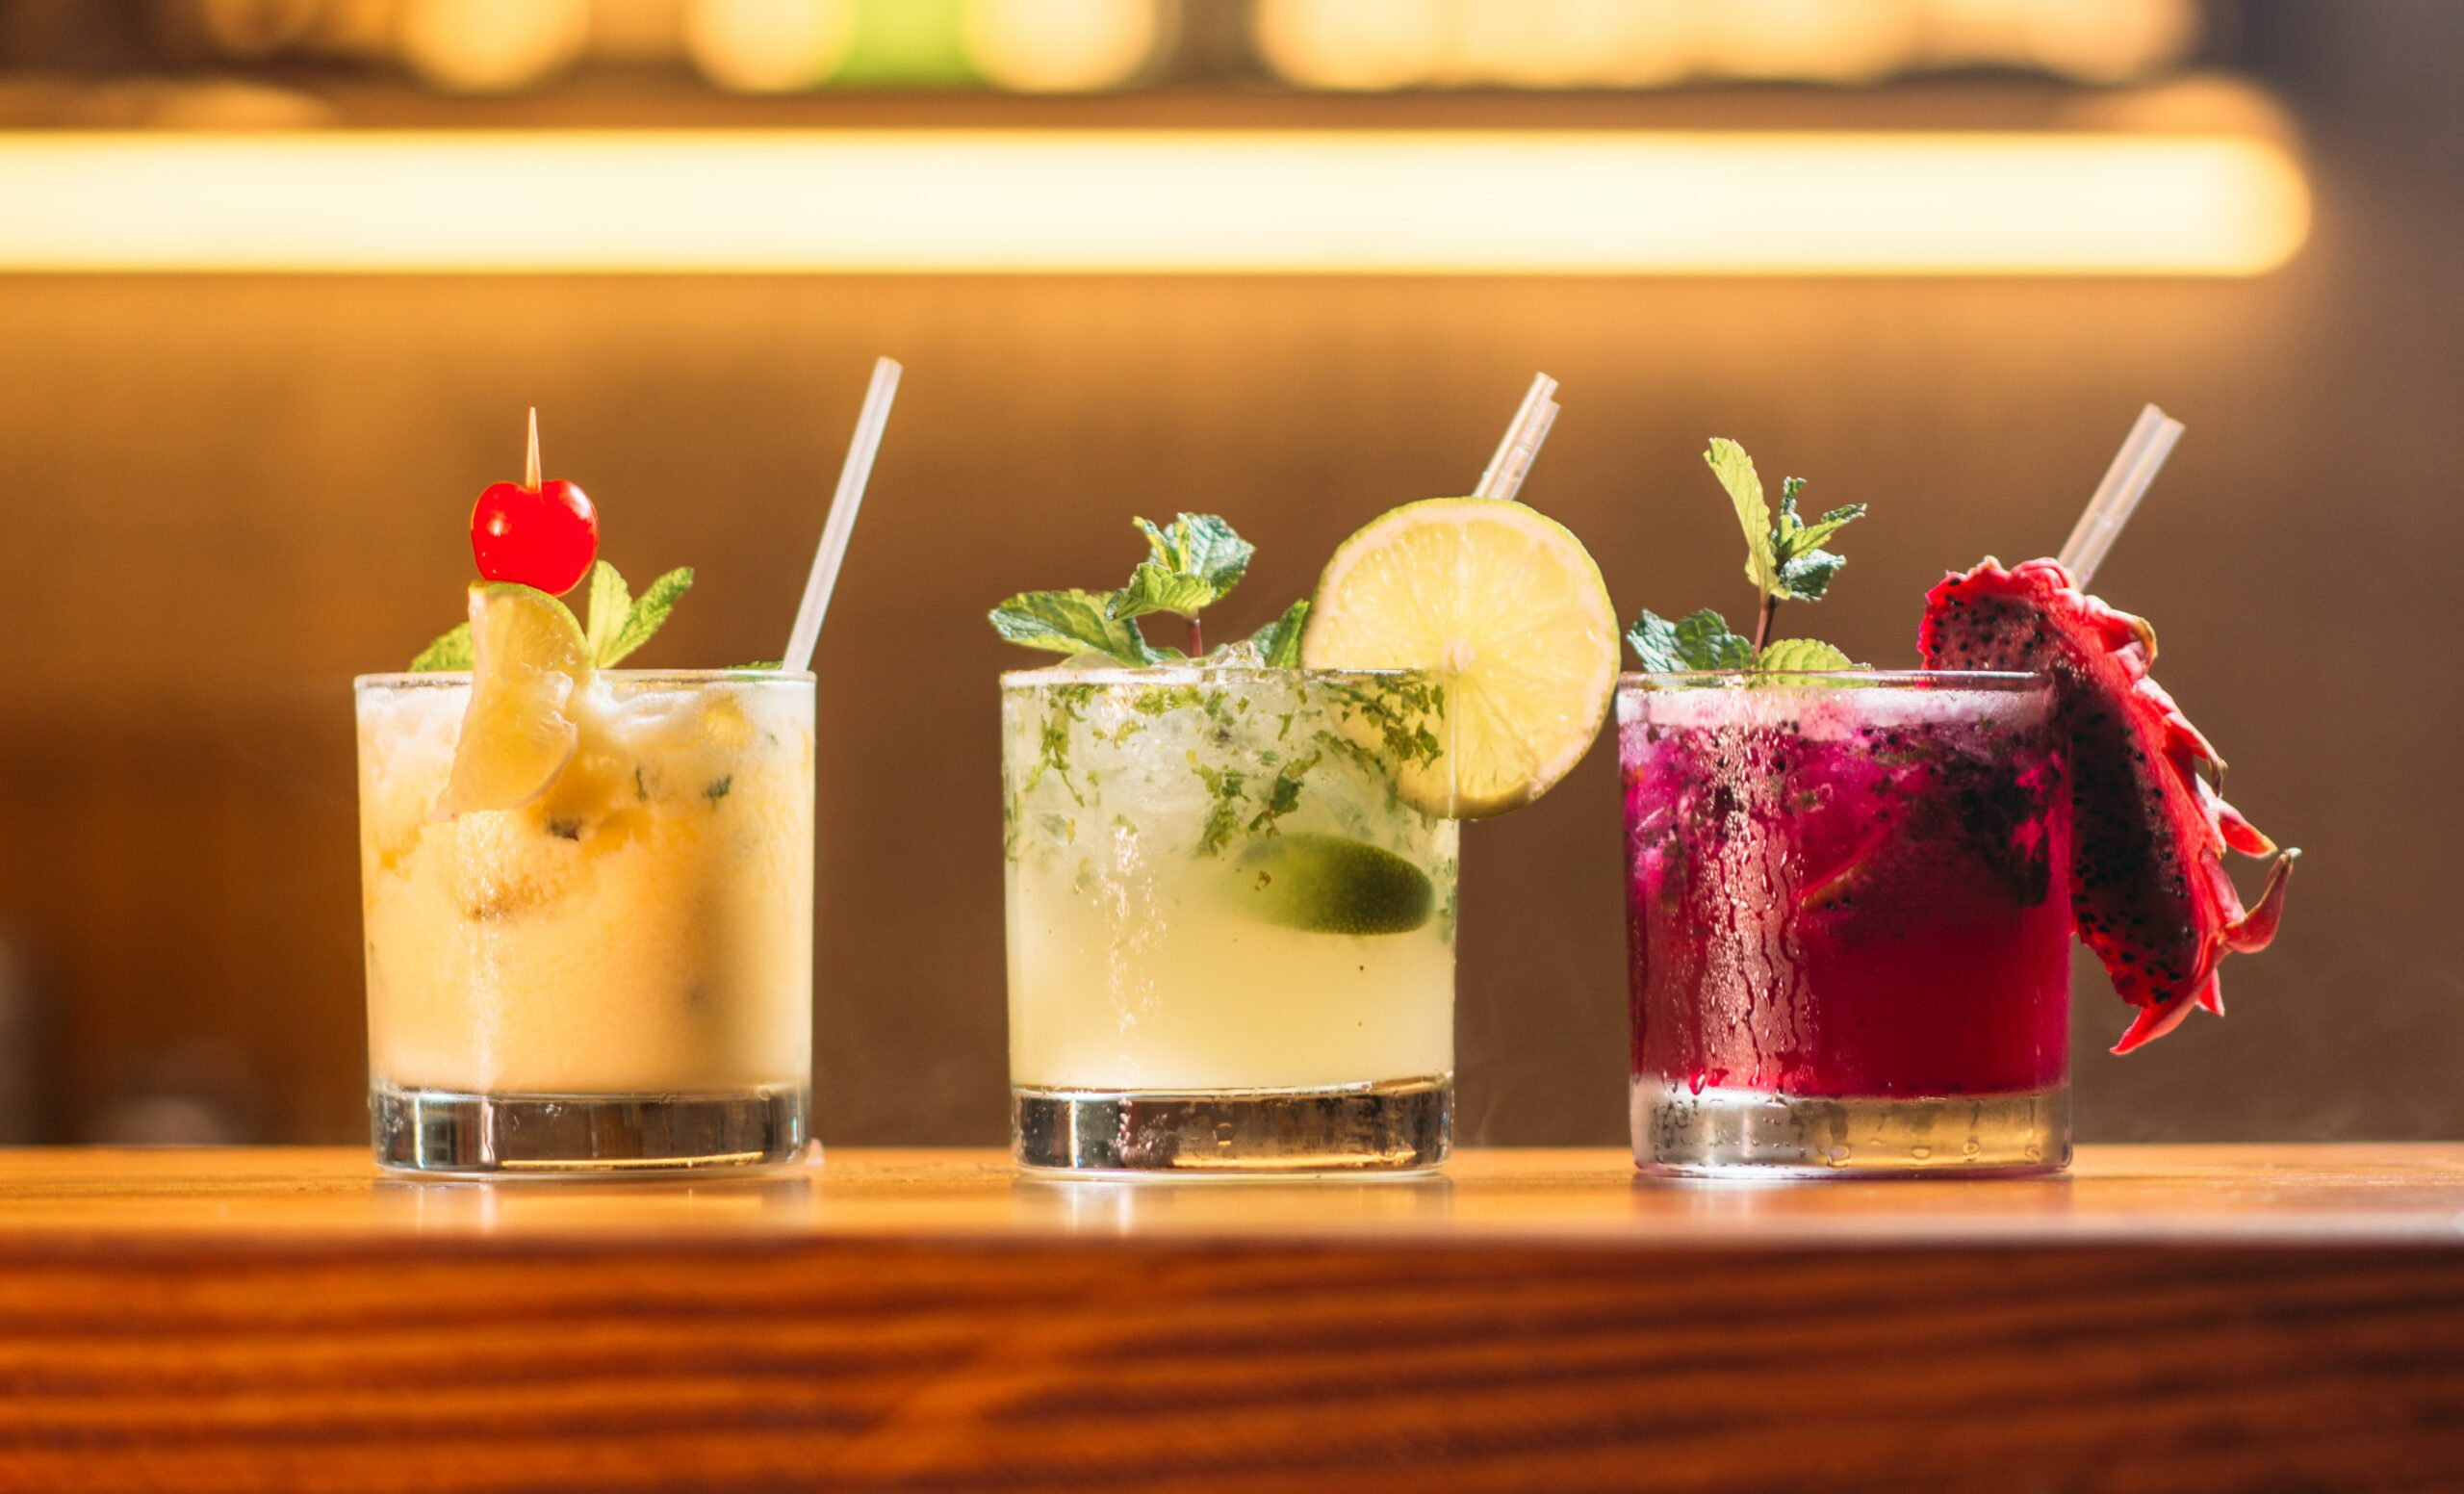 The Cocktail that Defeats Bodily-Rights Arguments